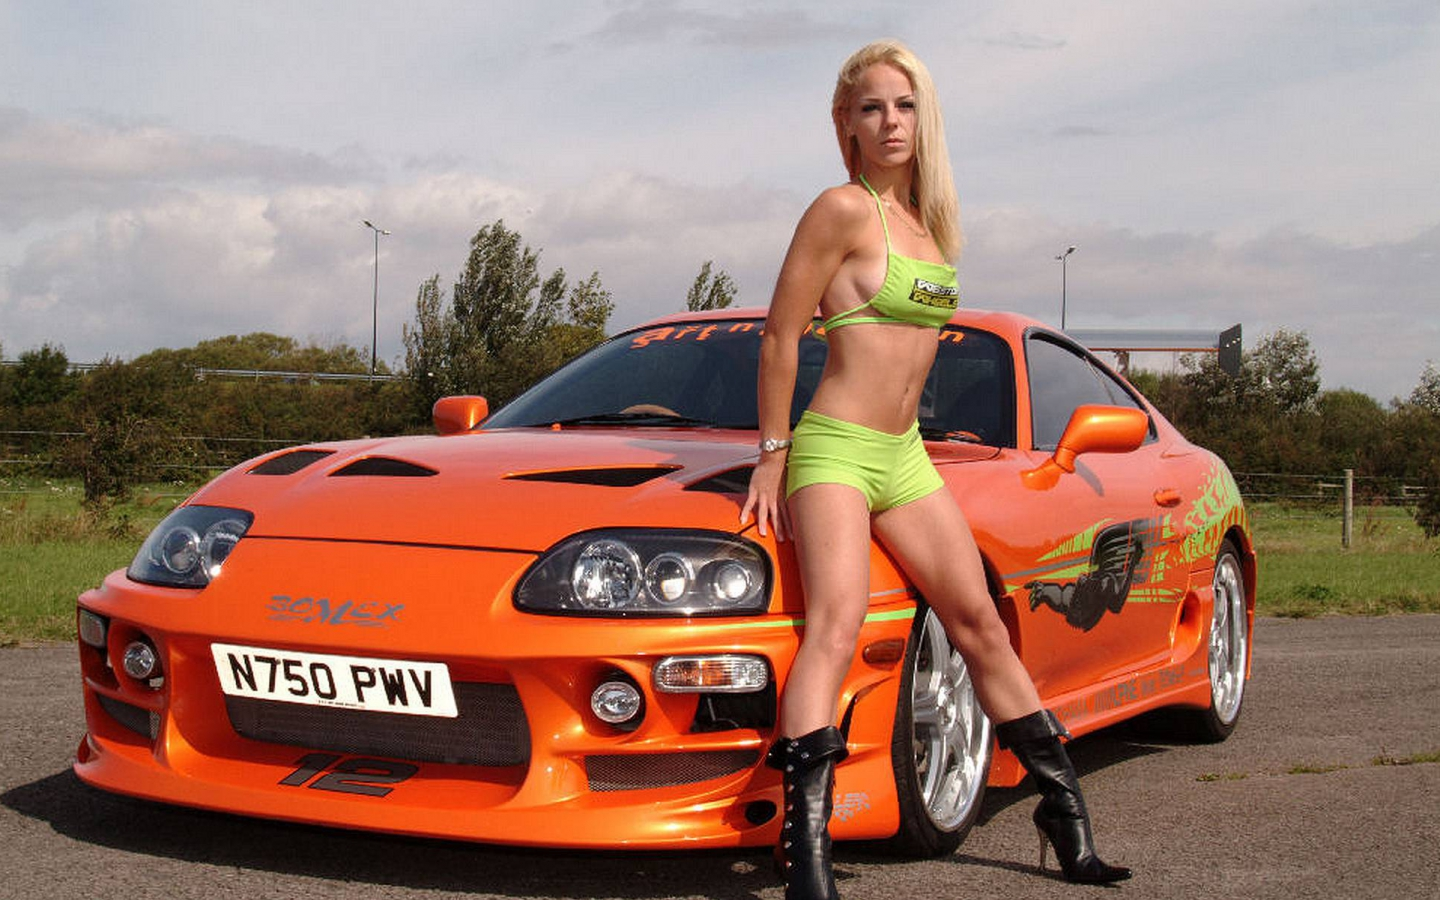 Hot Rides Images Hotrides HD Wallpaper And Background